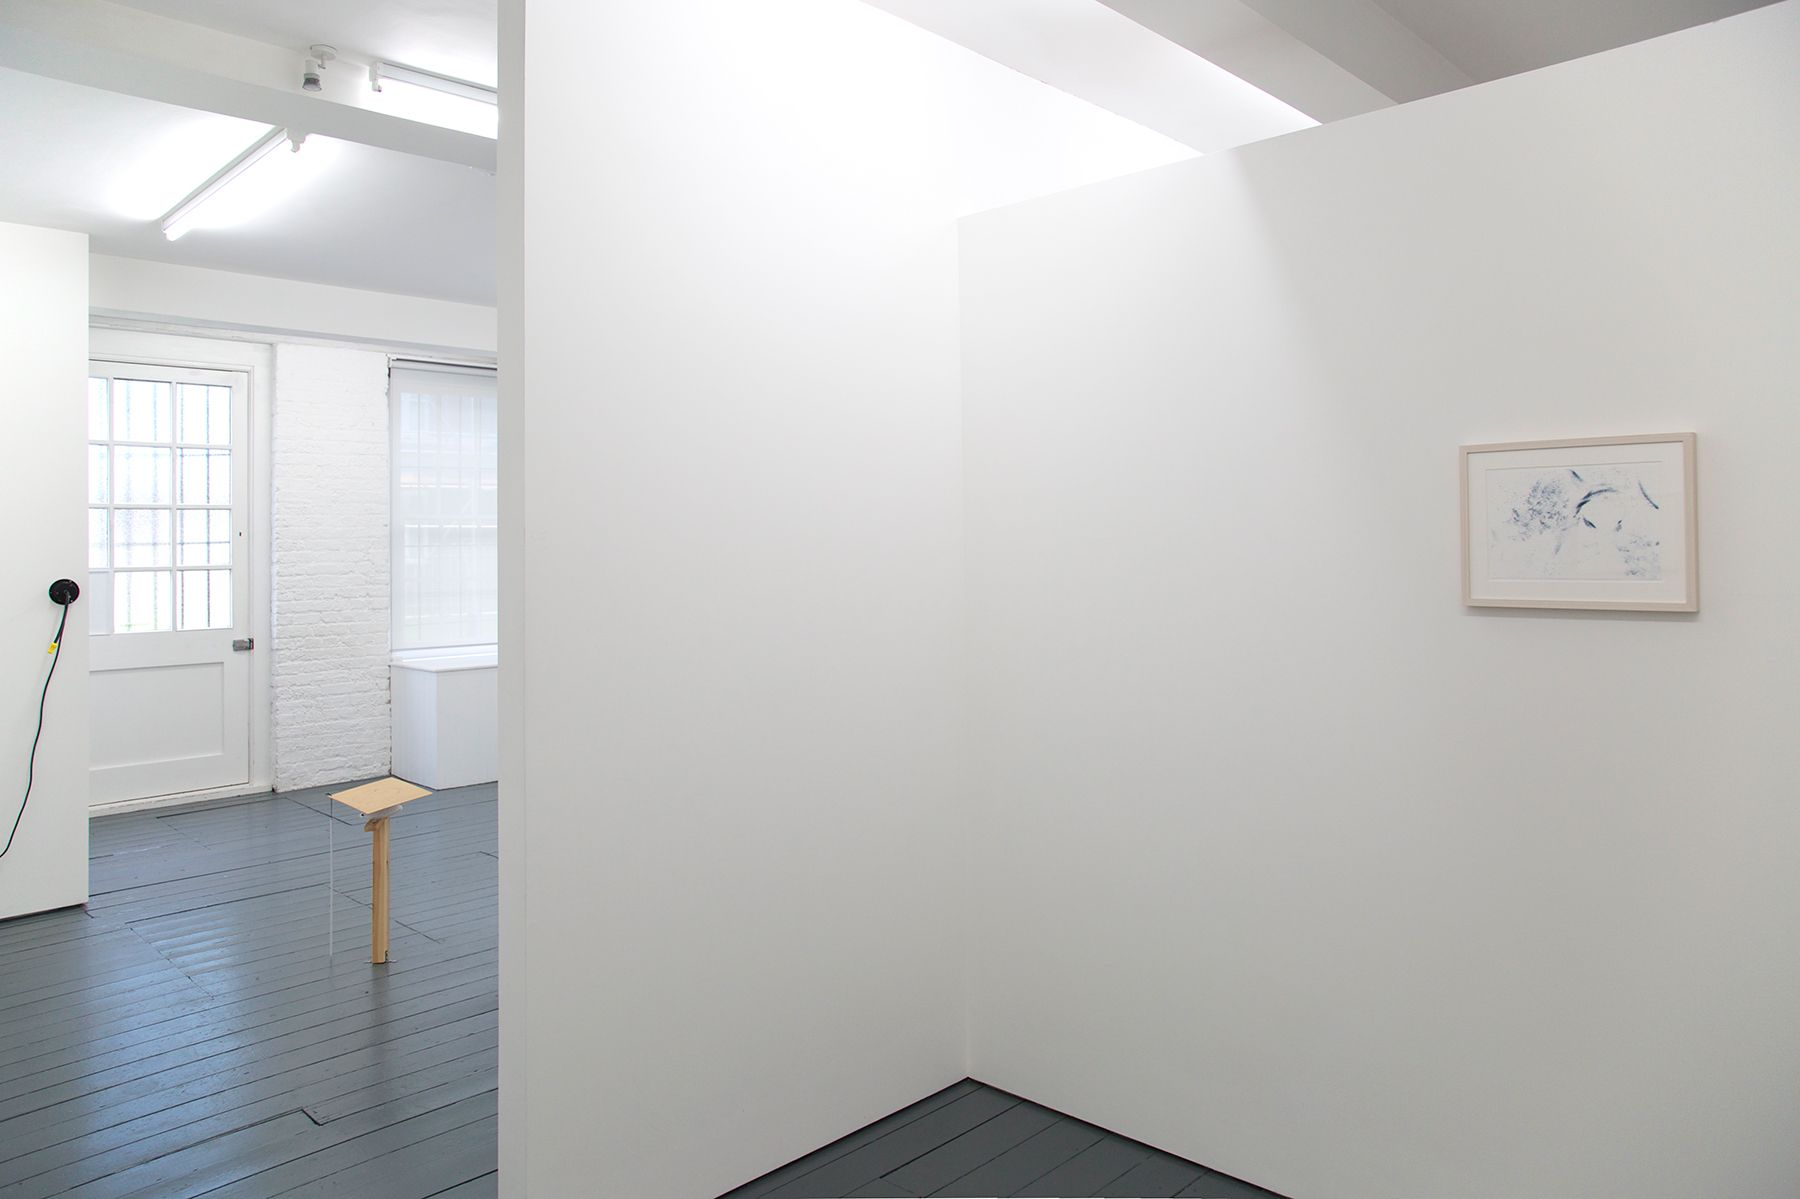 Back space installation view